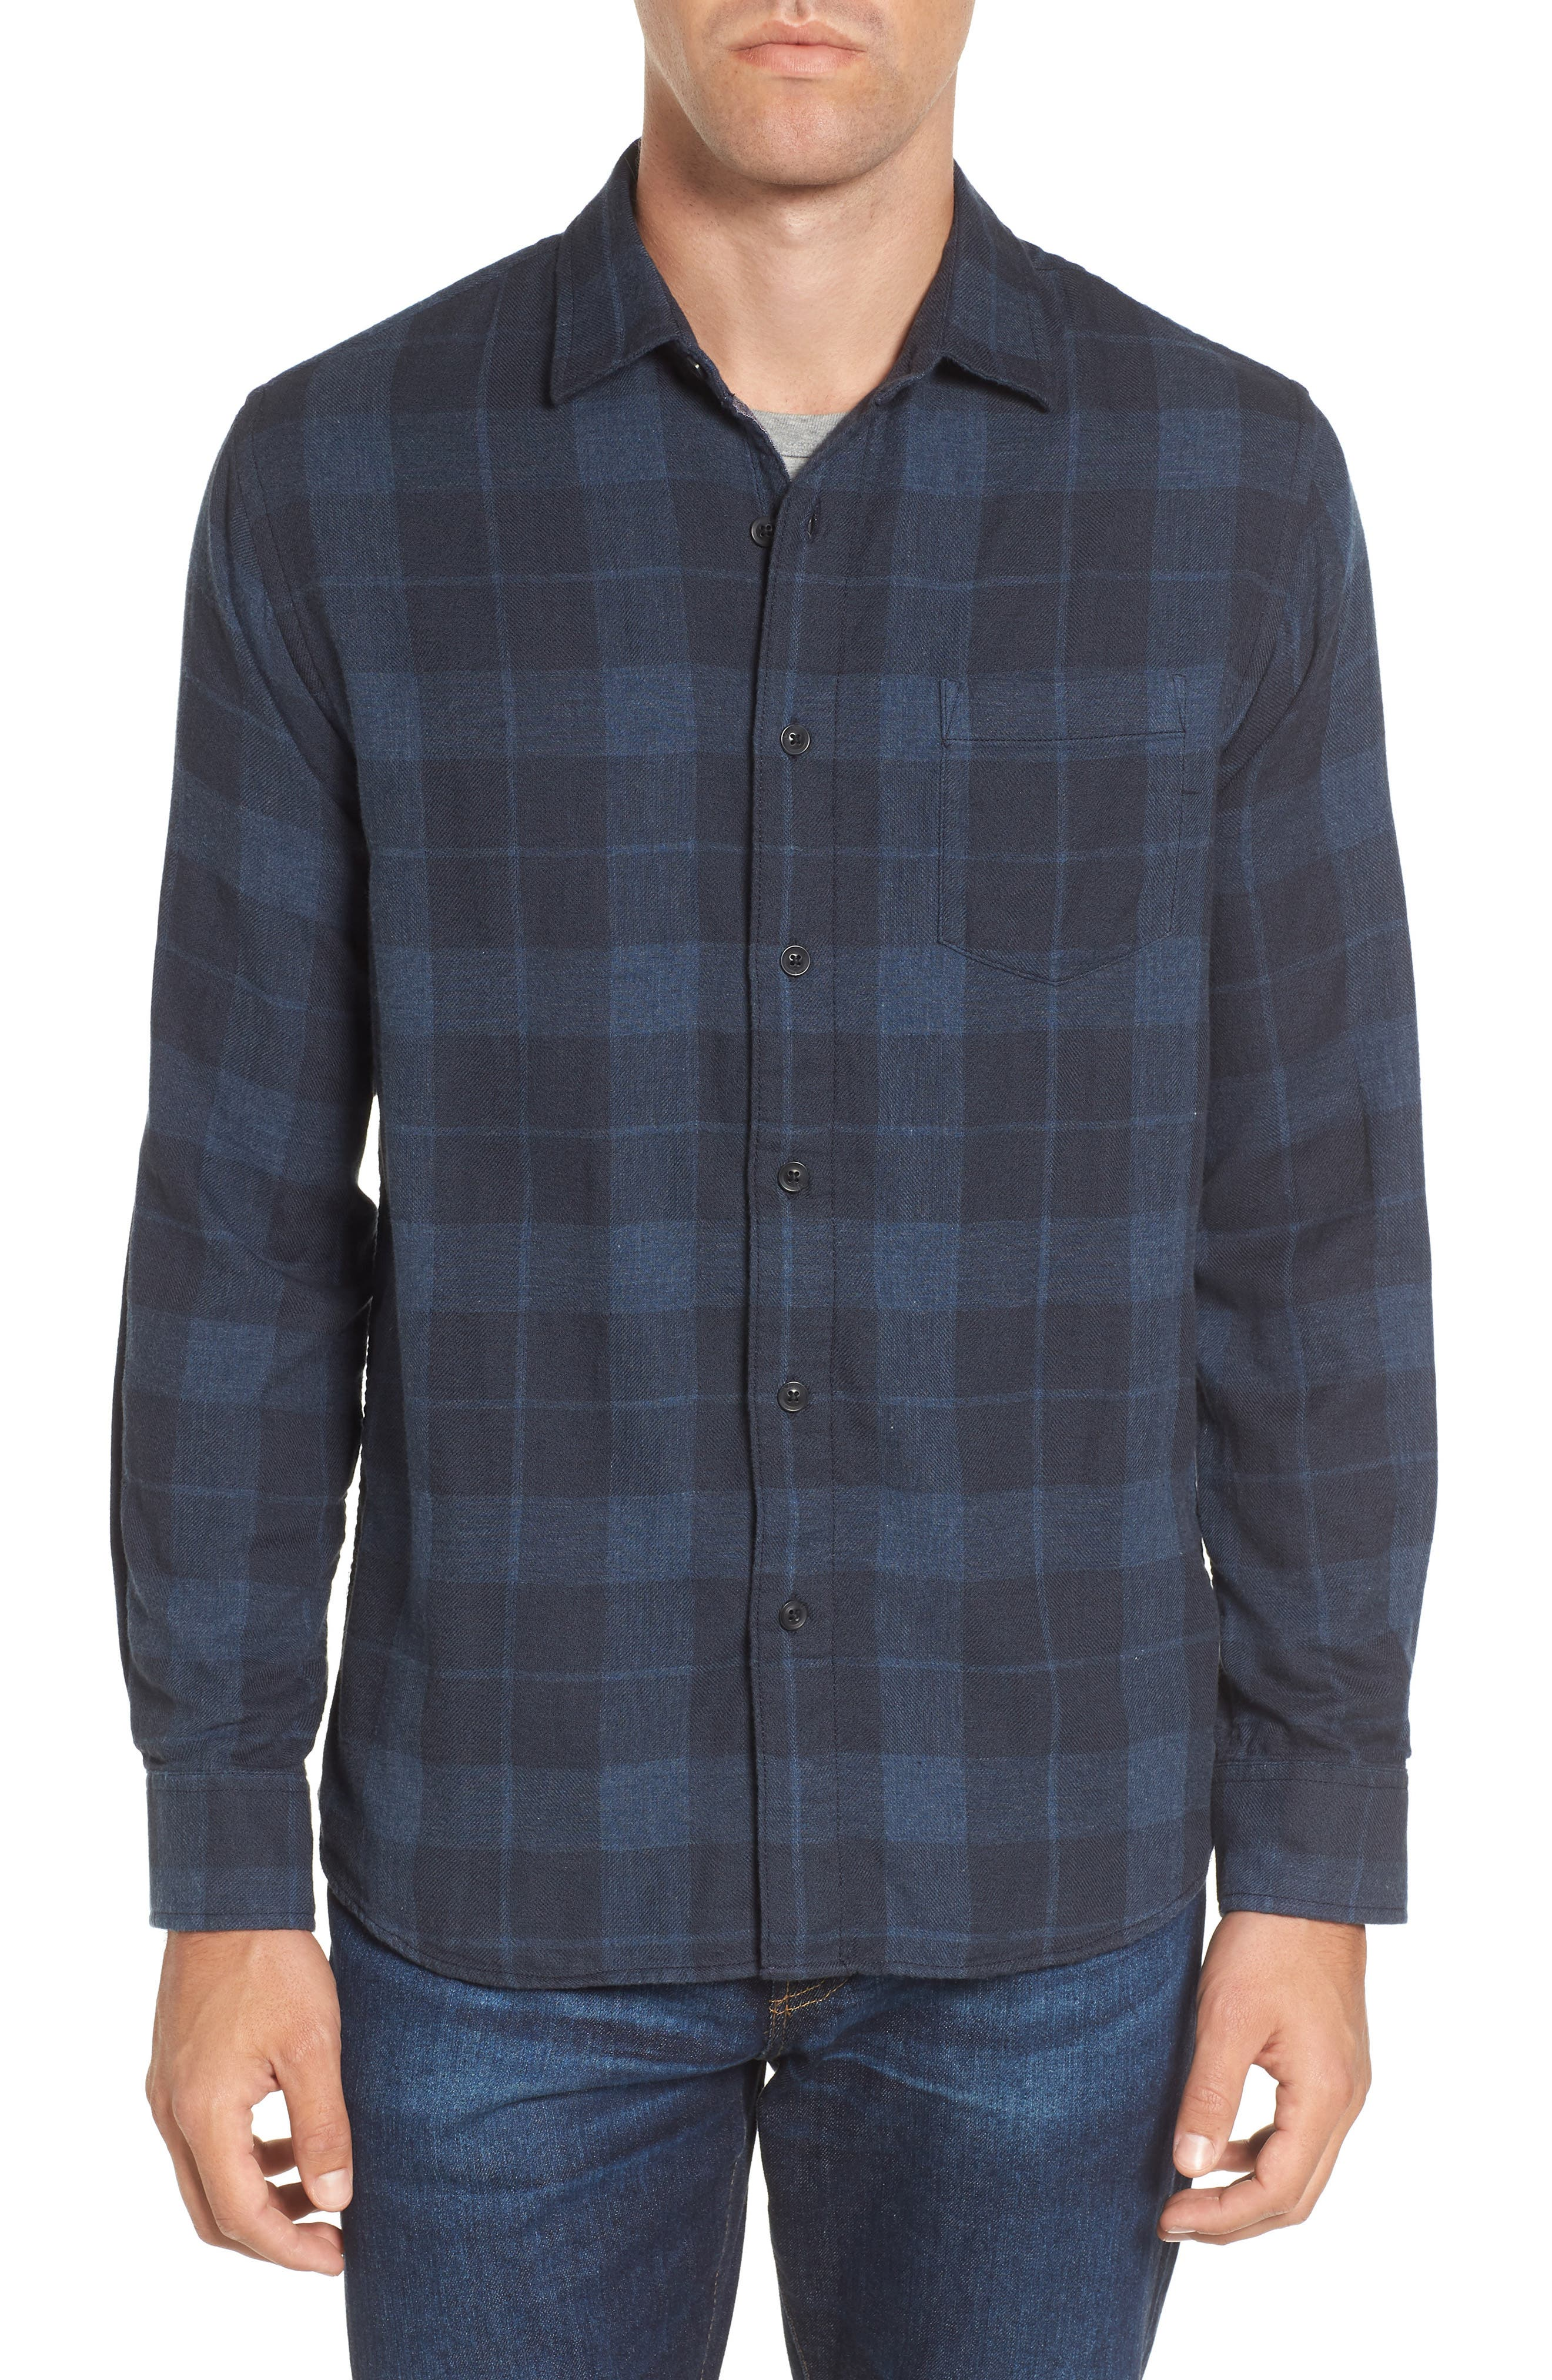 Helsby Double Cloth Plaid Sport Shirt,                         Main,                         color, Charcoal Navy Heather